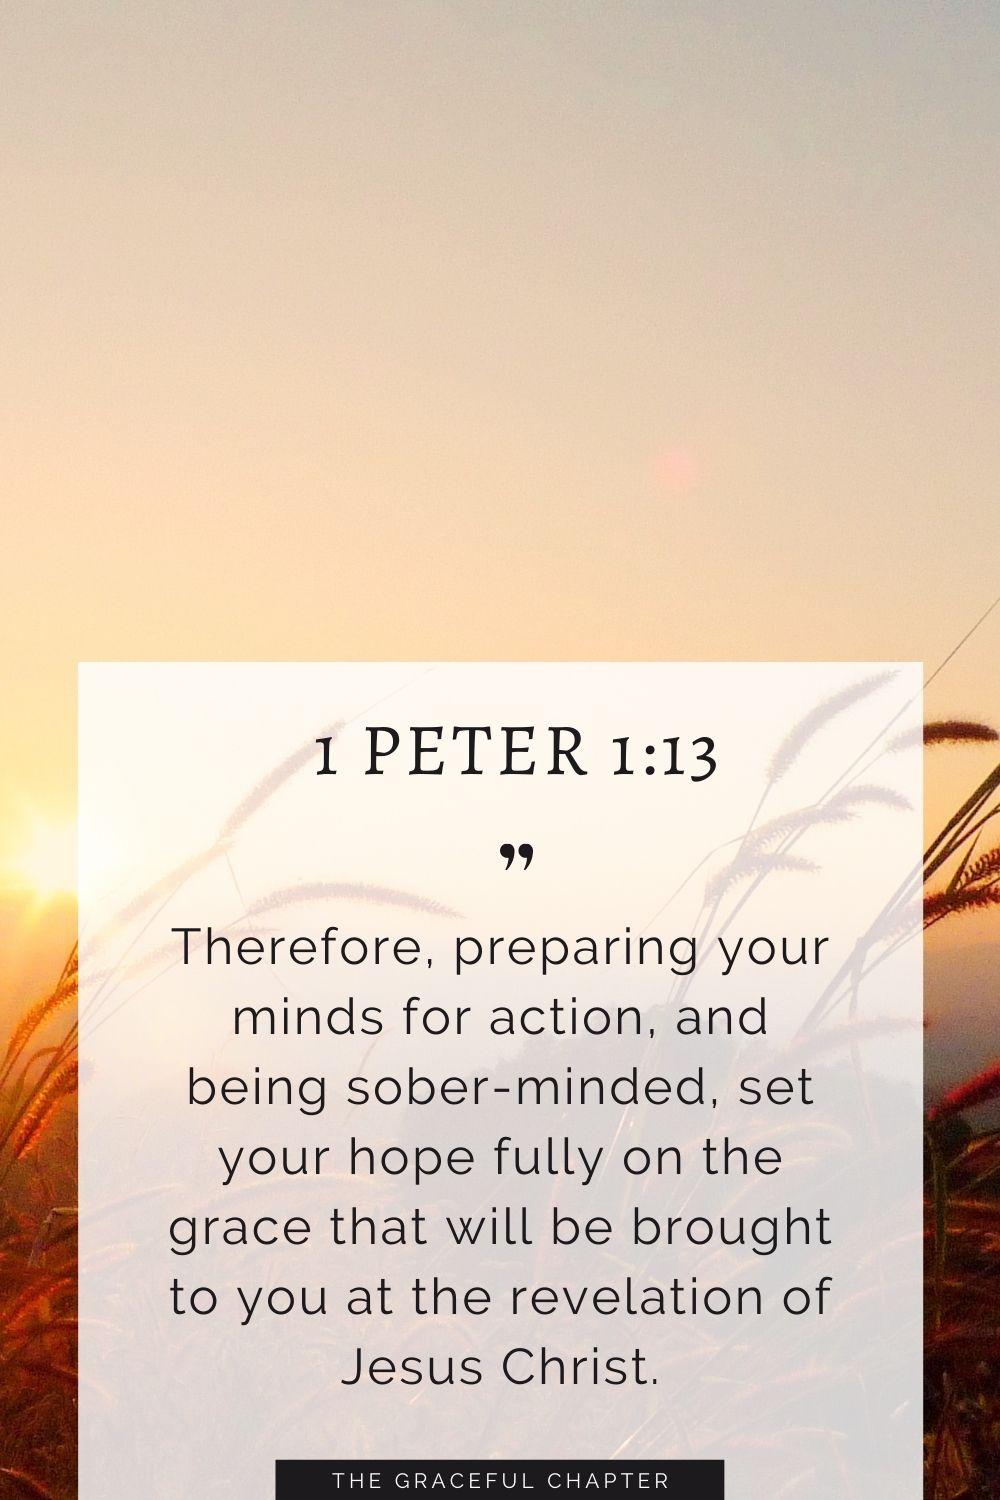 Therefore, preparing your minds for action, and being sober-minded, set your hope fully on the grace that will be brought to you at the revelation of Jesus Christ. Therefore, preparing your minds for action, and being sober-minded, set your hope fully on the grace that will be brought to you at the revelation of Jesus Christ. 1 Peter 1:13